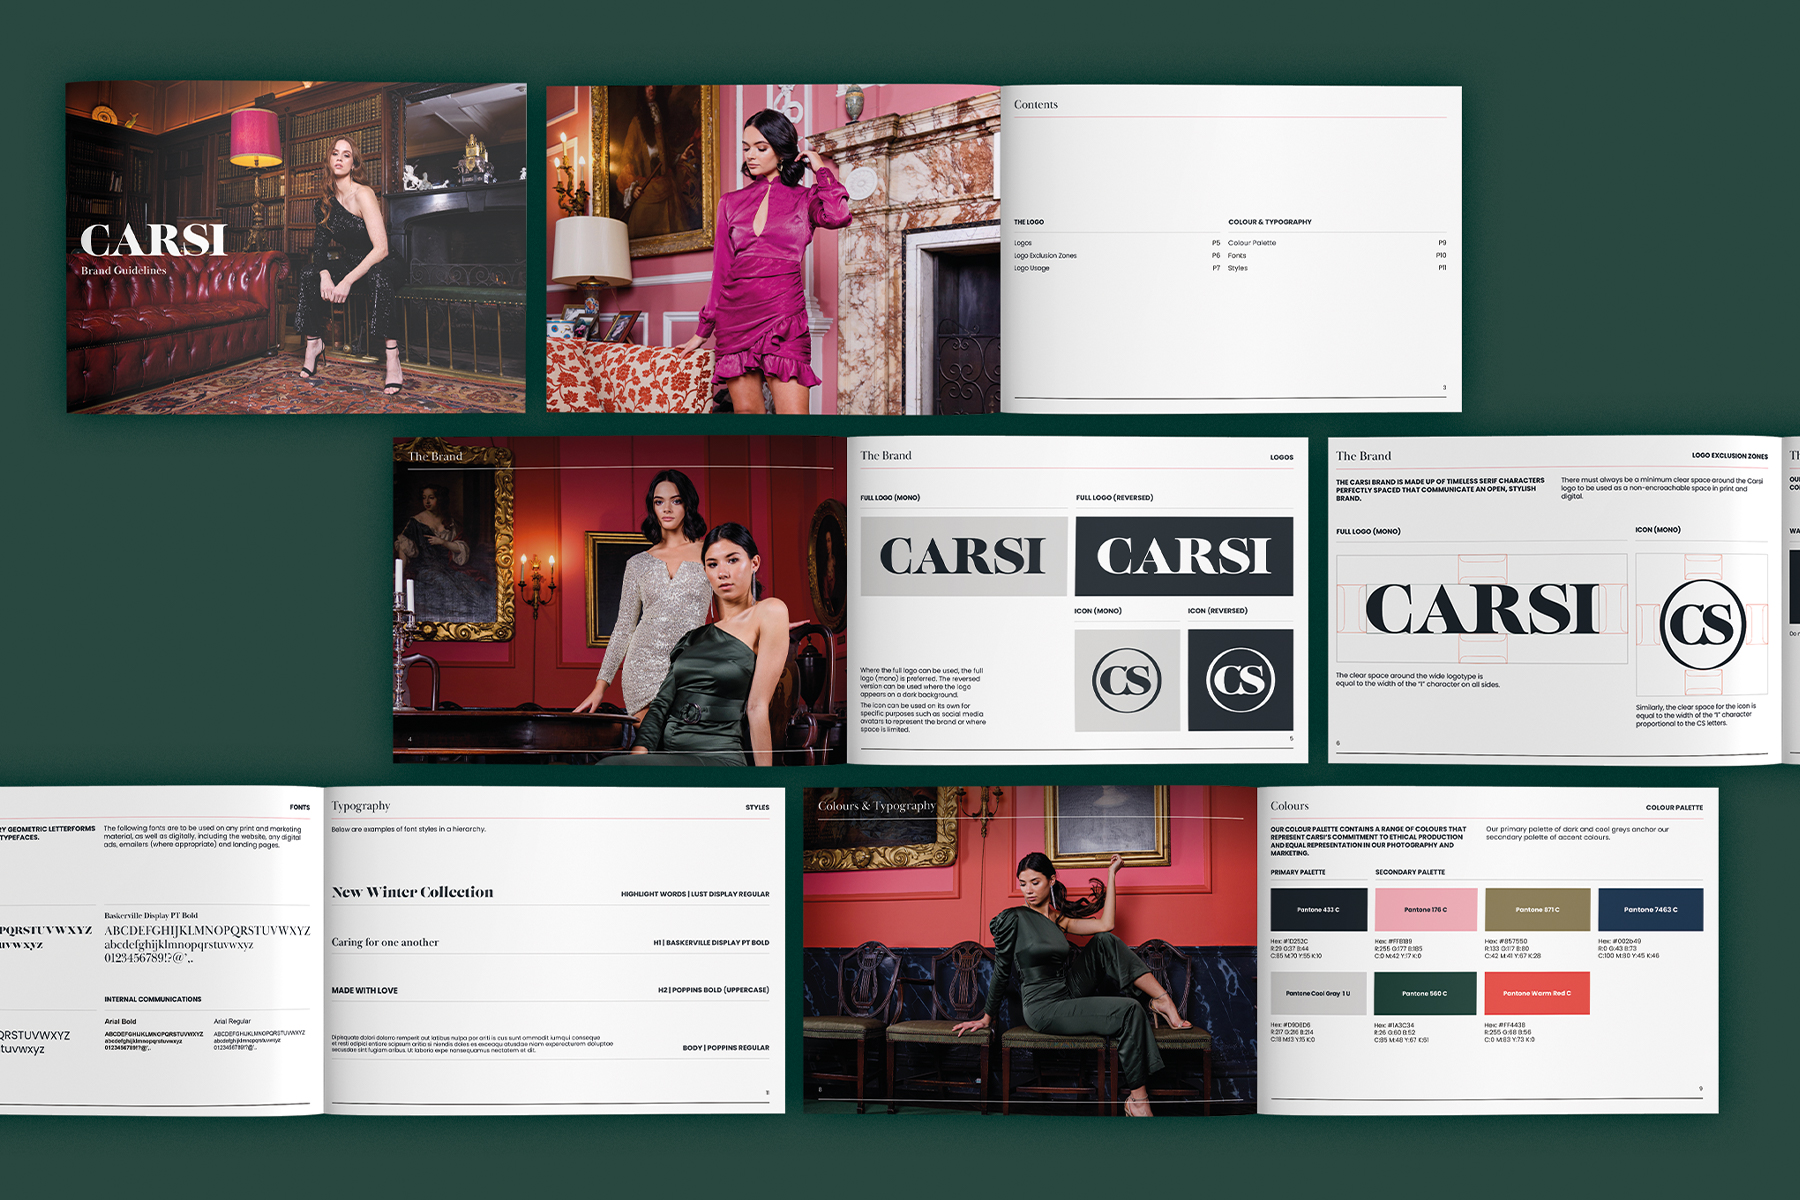 Carsi Collection Brand Guidelines